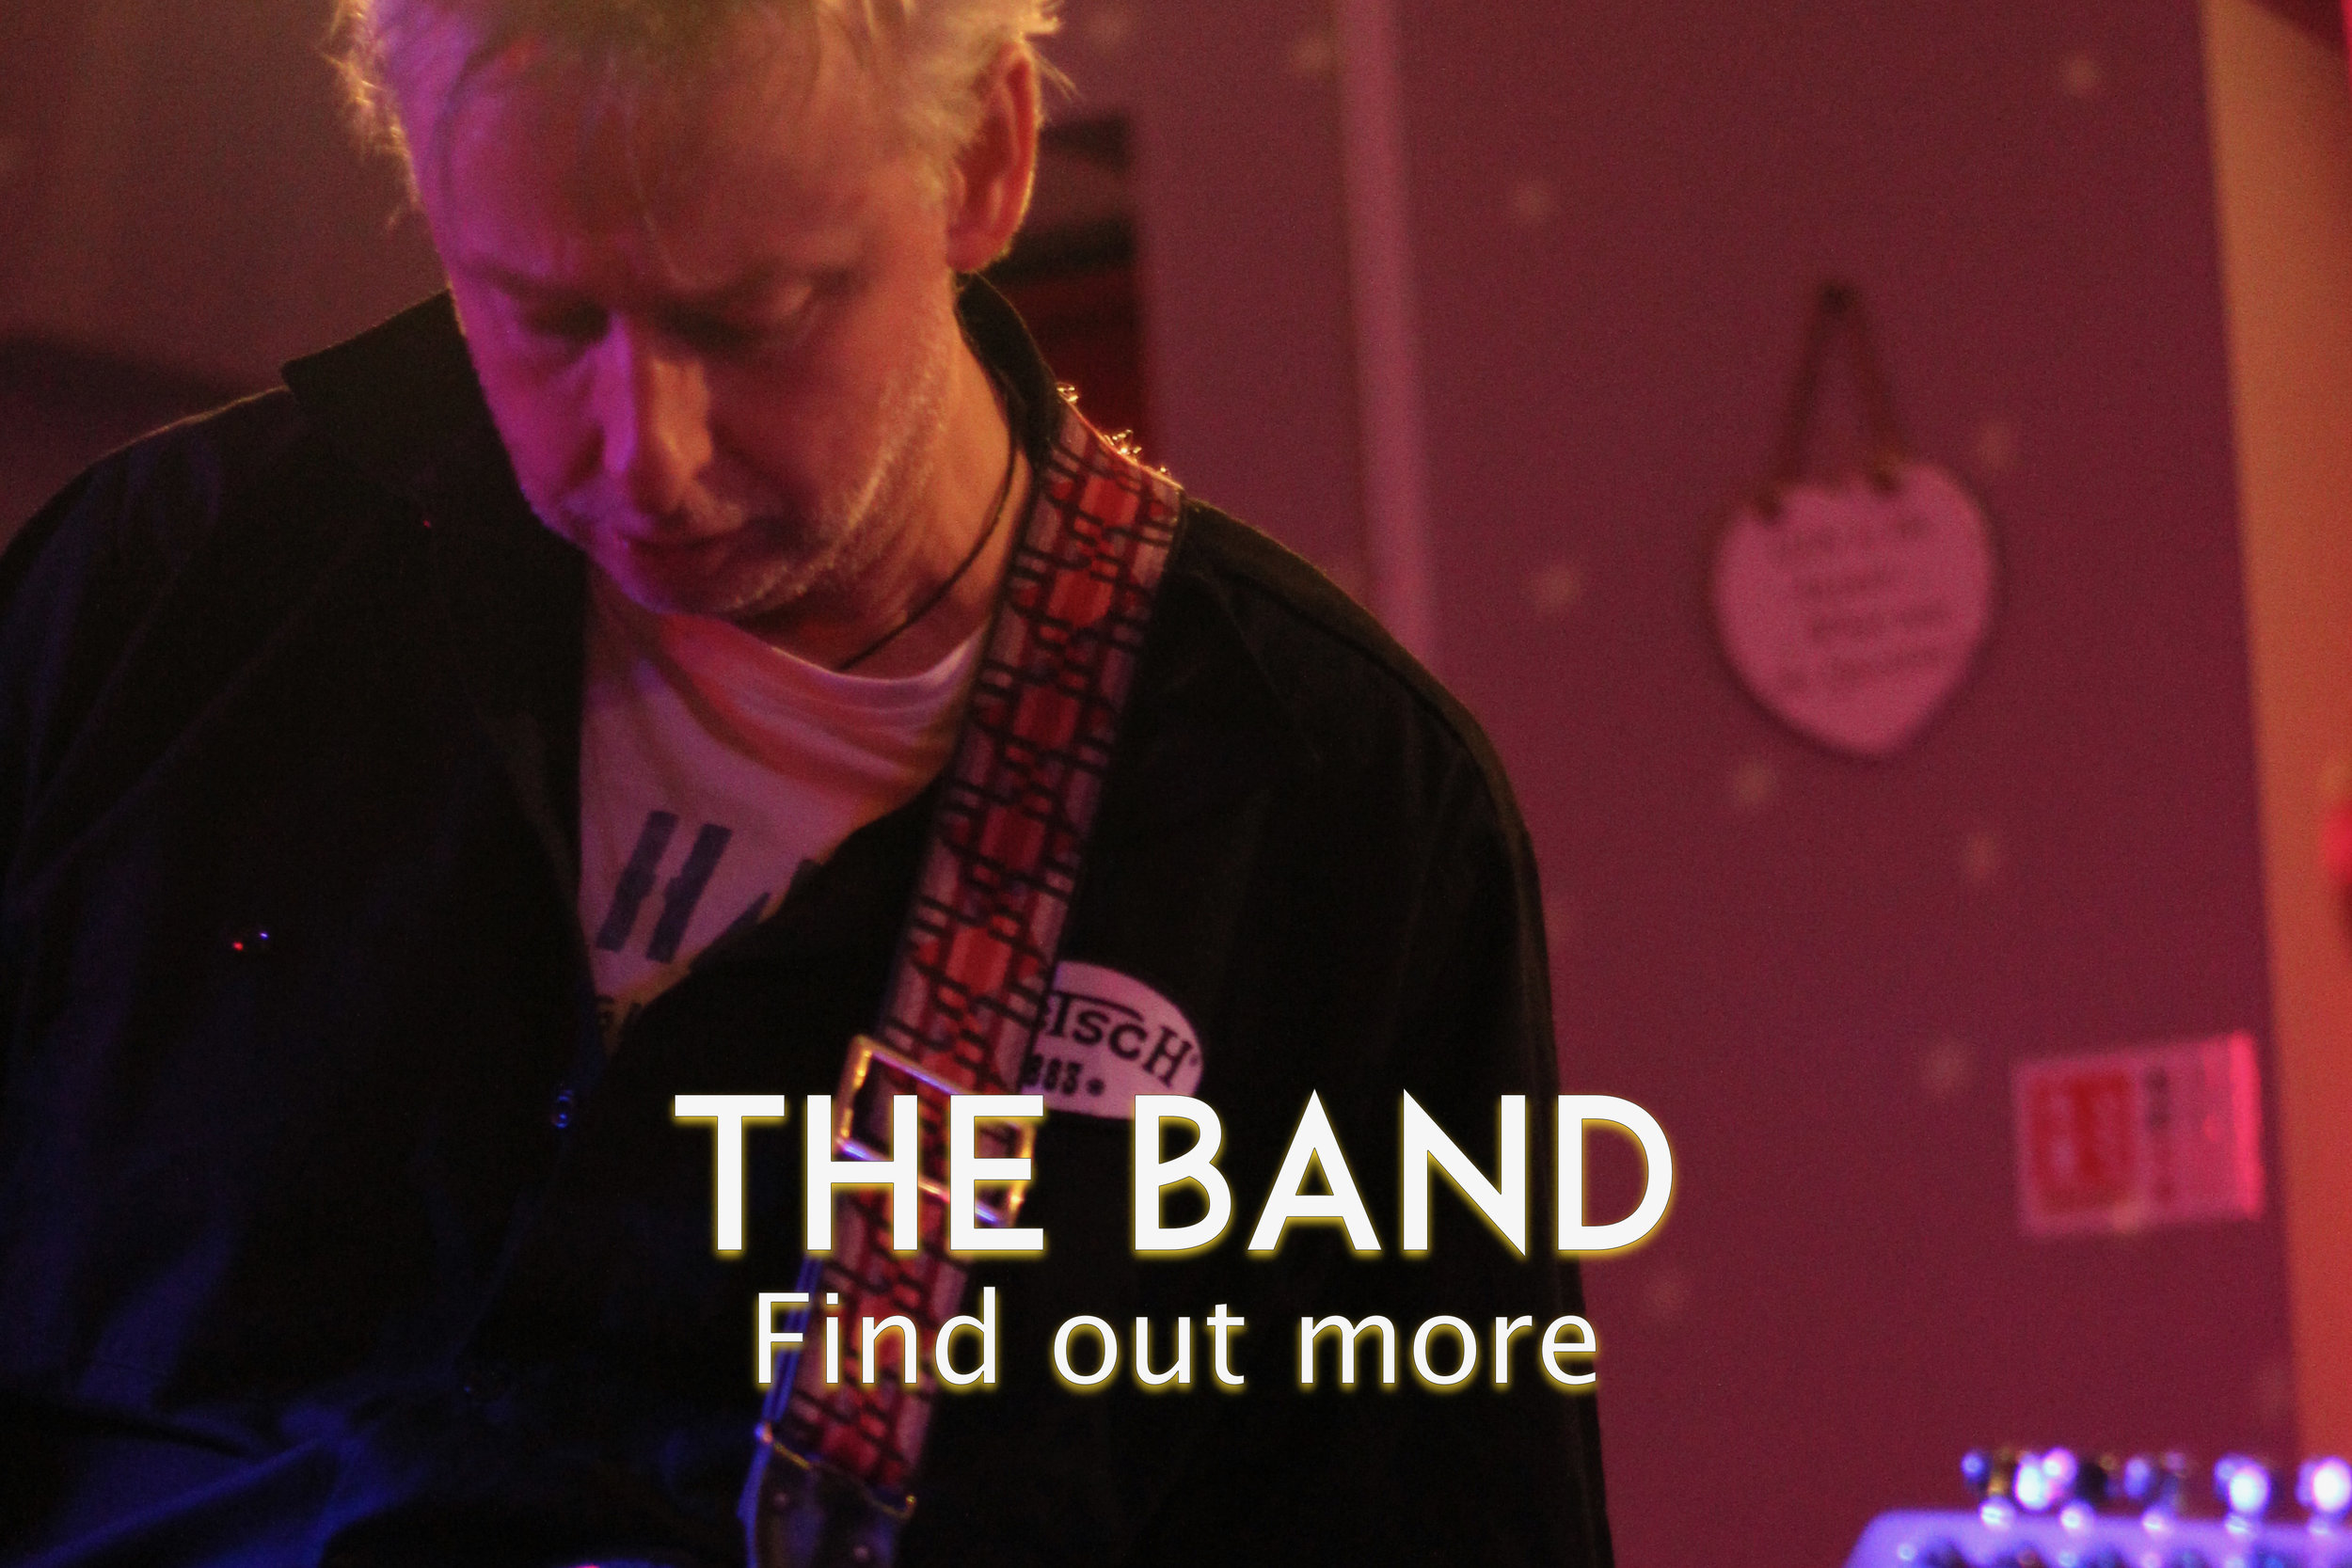 Find out more about the band